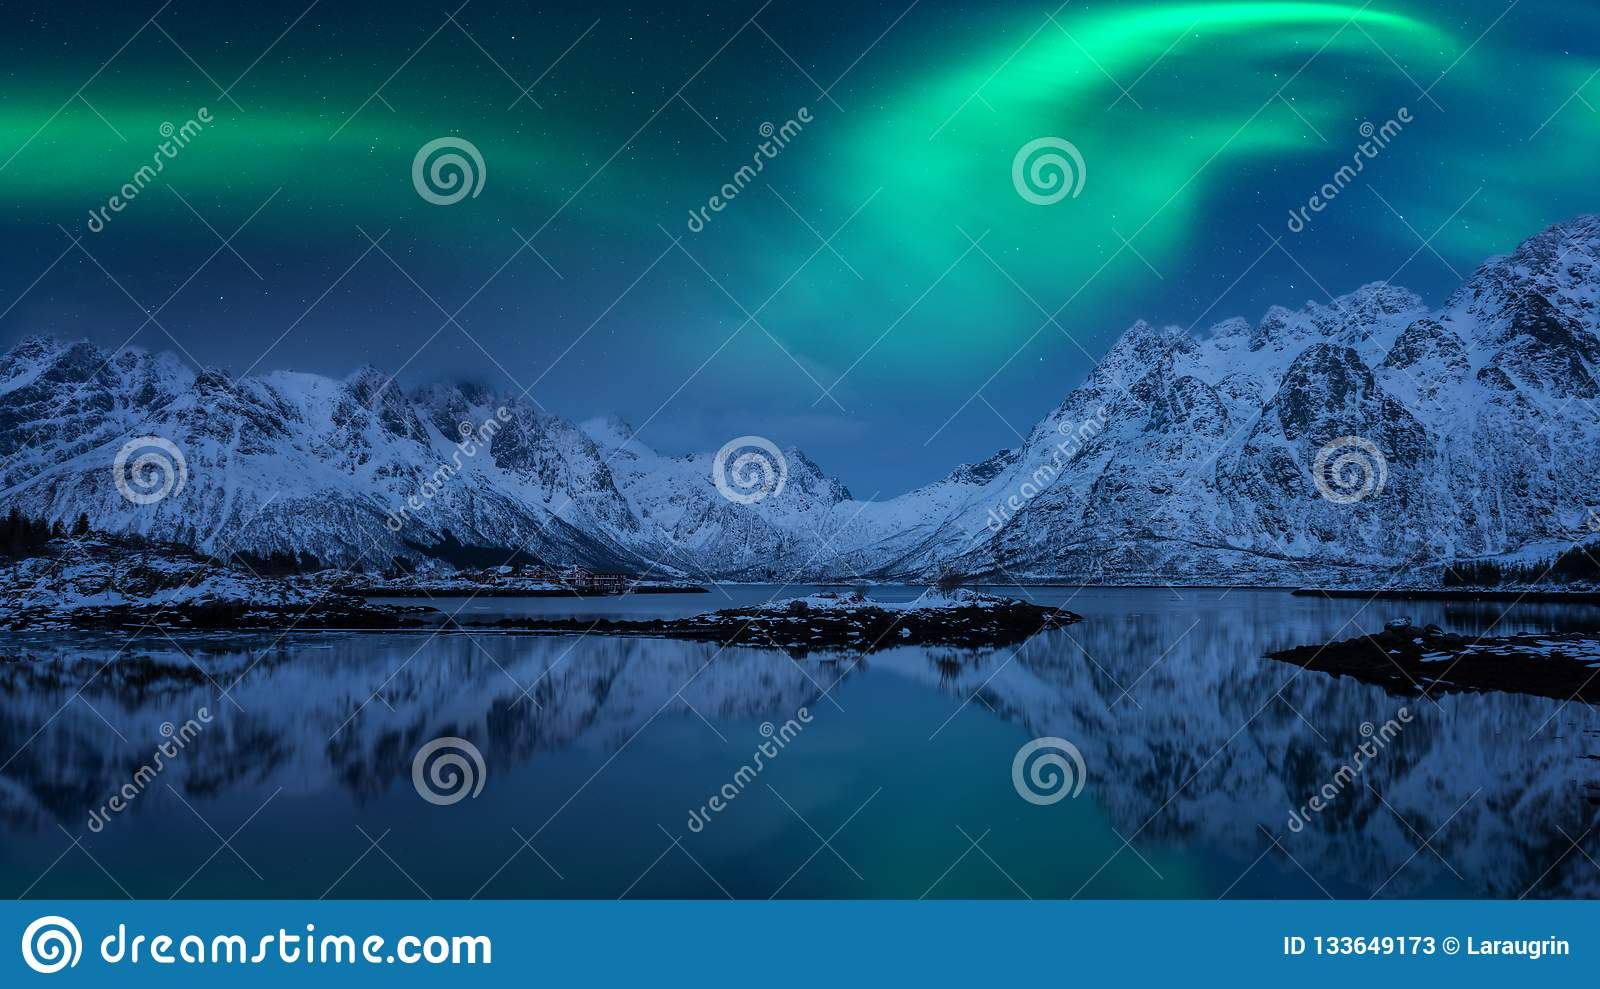 Northern lights, Aurora borealis, Lofoten islands, Norway. Night winter landscape with polar lights, starry sky and mountains